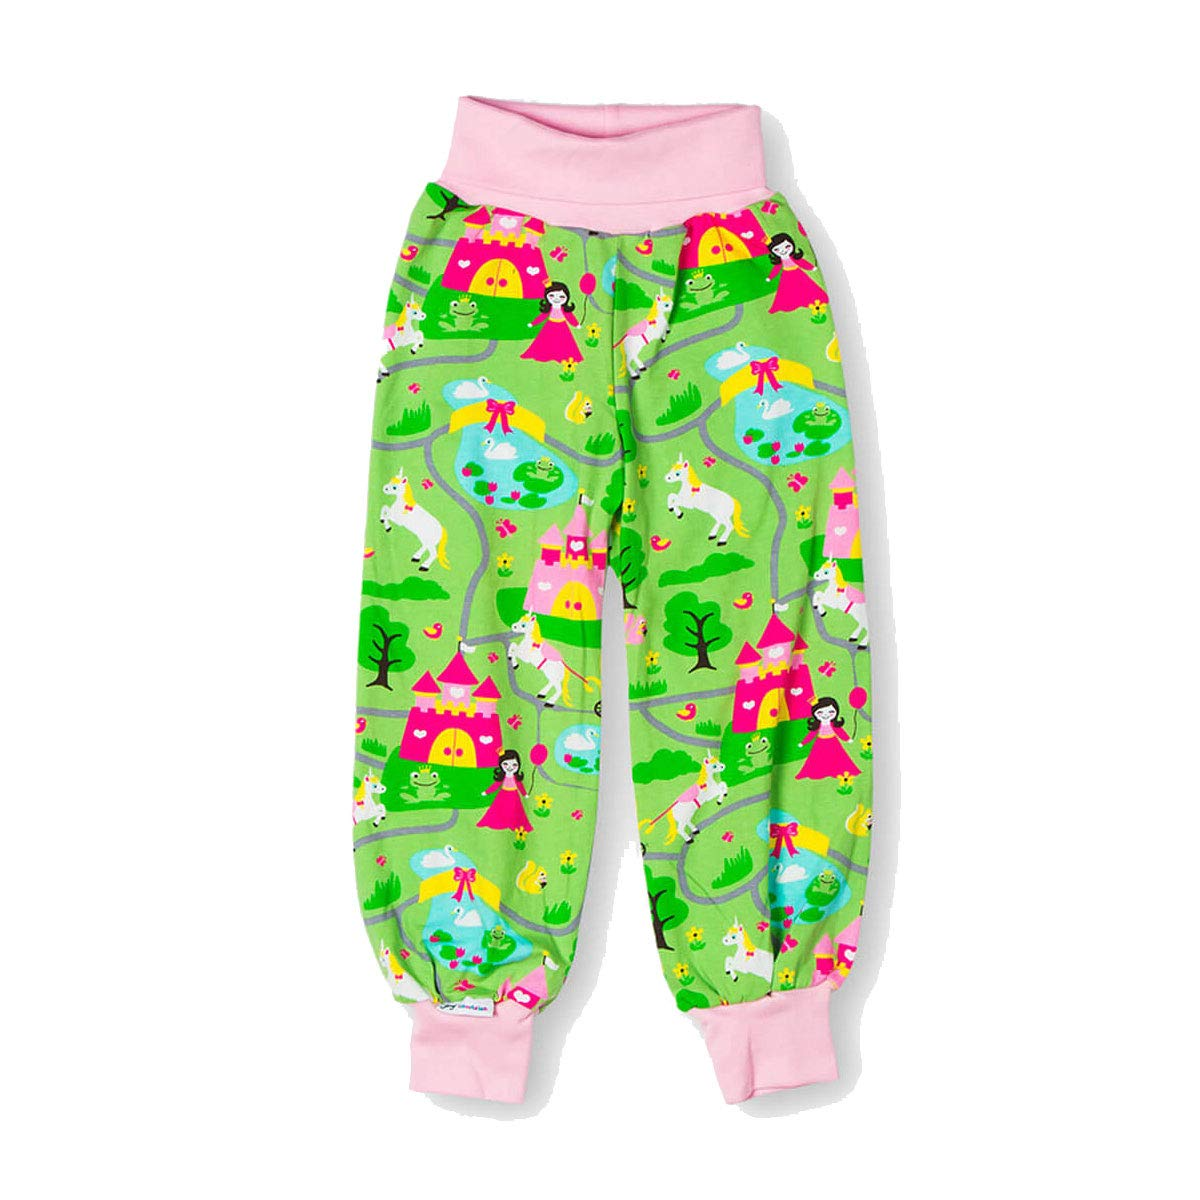 JNY Colourful Kids Princess Castle Baby Girls Crawling Trousers in Green